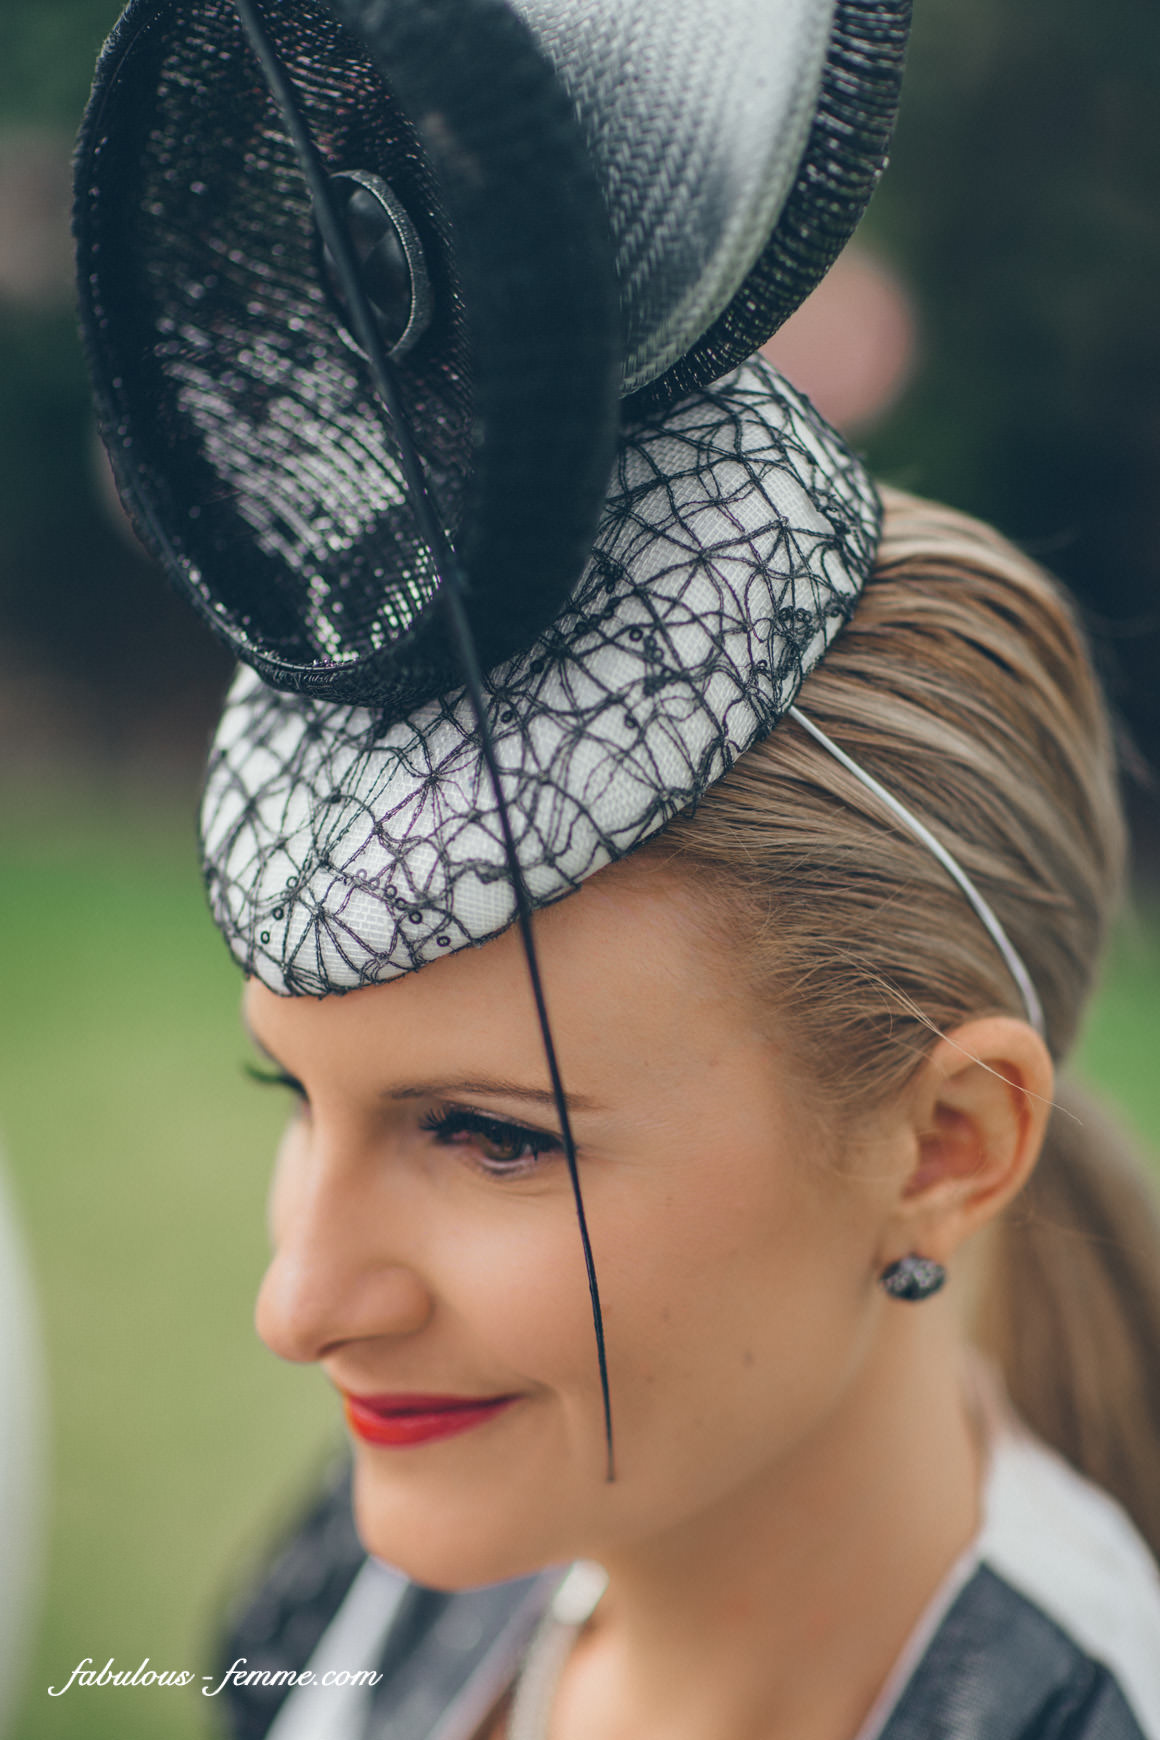 black and white millinery